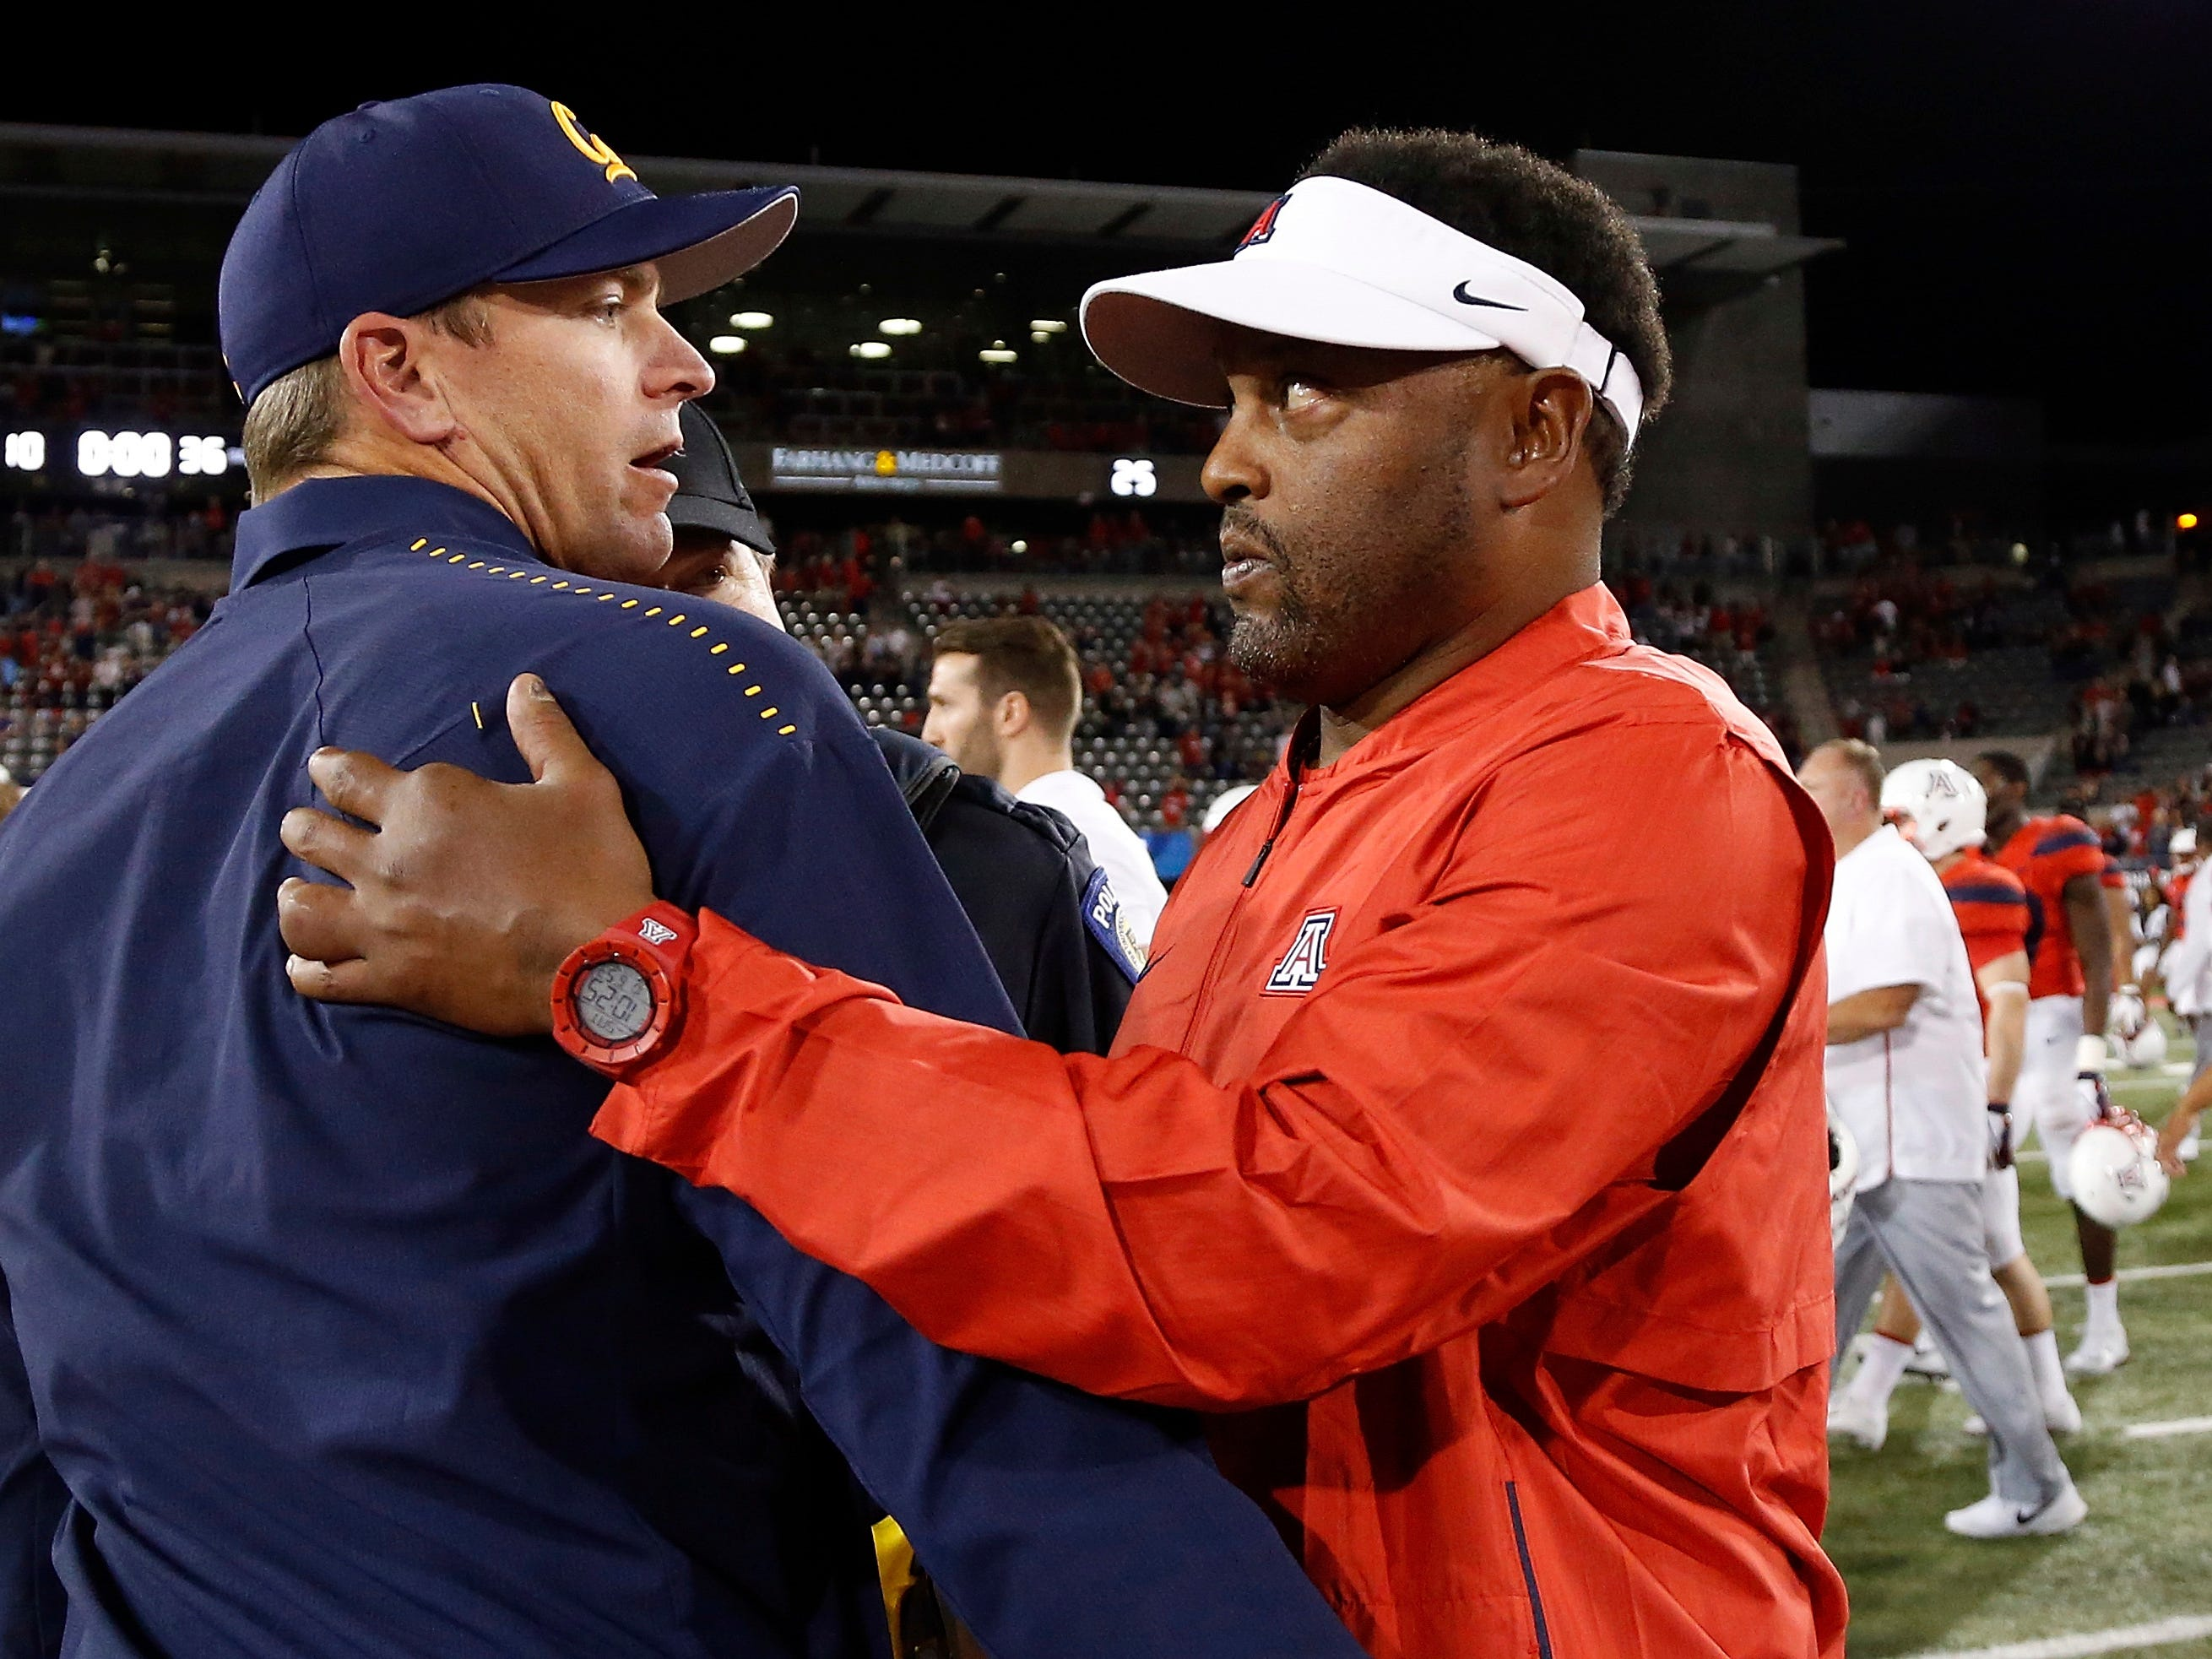 Arizona coach Kevin Sumlin, right, greets California coach Justin Wilcox after an NCAA college football game Saturday, Oct. 6, 2018, in Tucson, Ariz.